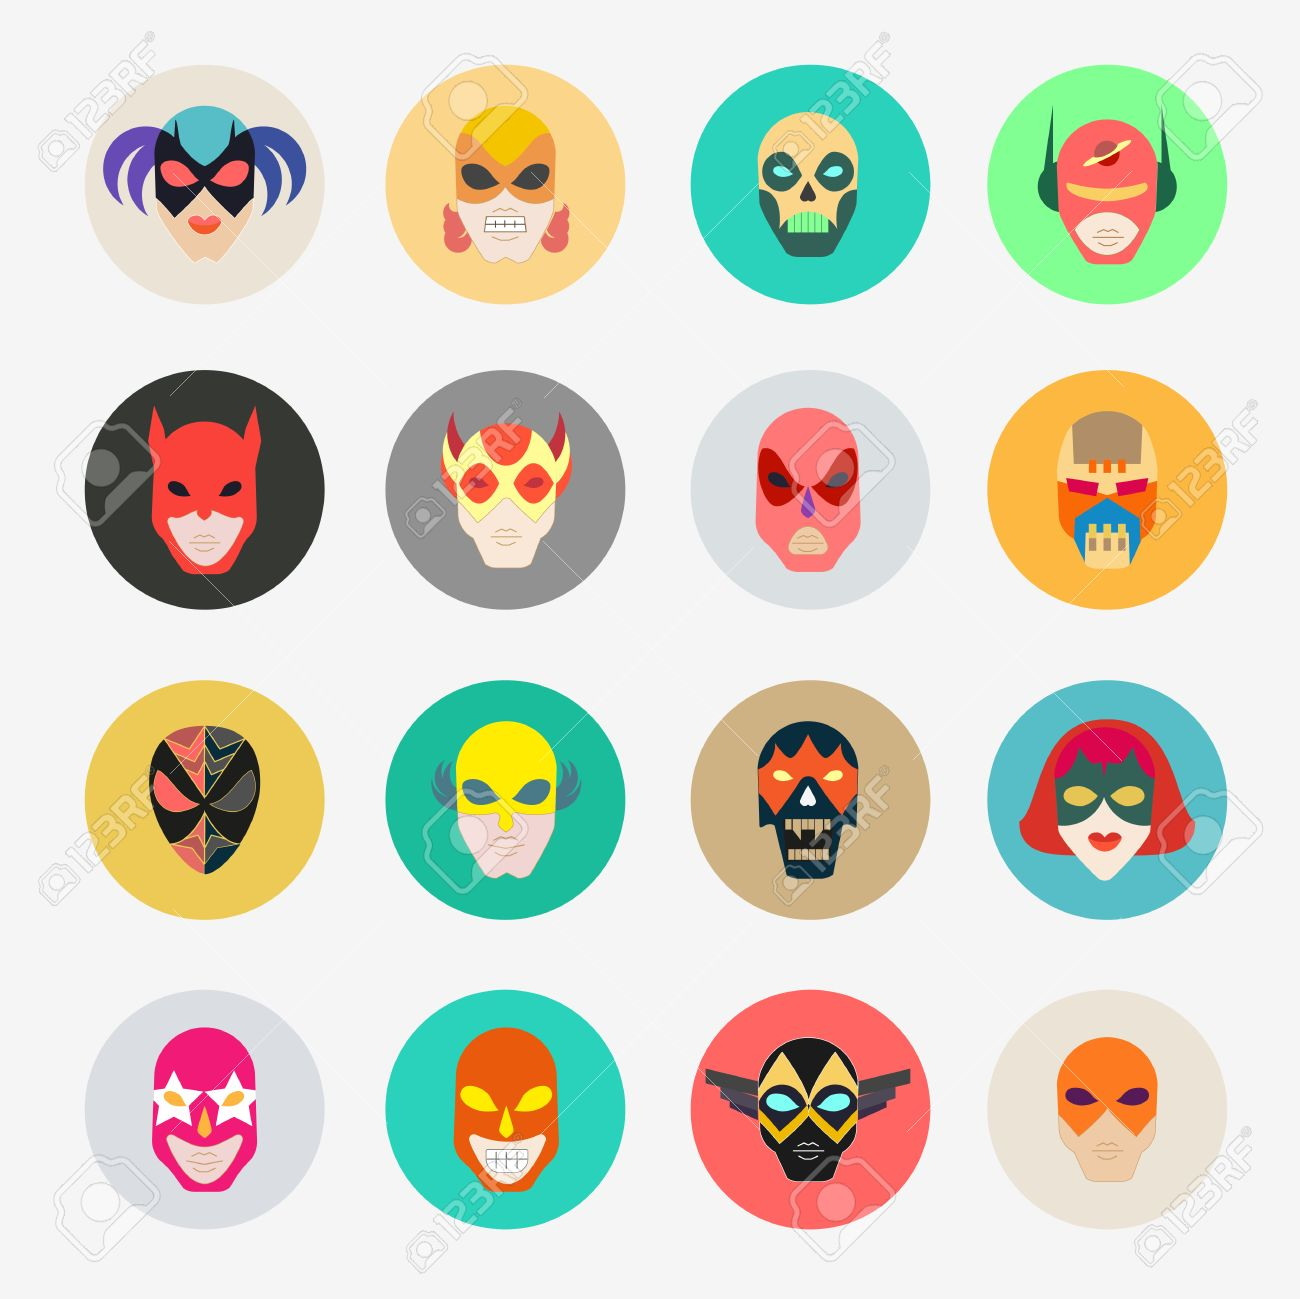 Super hero masks for face character superhero flat icons symbol super hero masks for face character superhero flat icons symbol of strong and heroic biocorpaavc Image collections